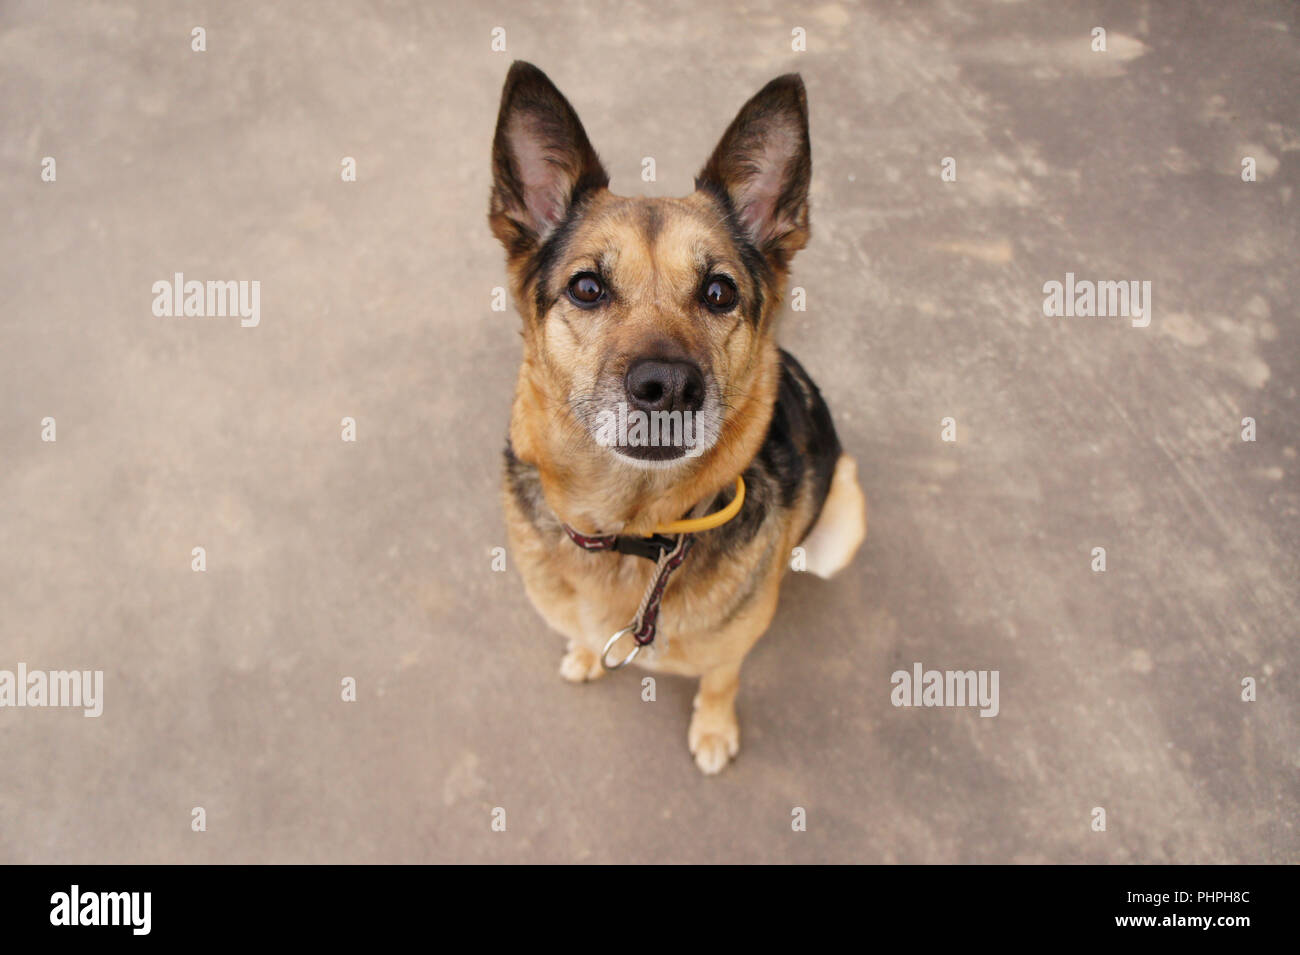 An old shepherd is sitting patiently infront of the camera with her ears pointed, waiting for commands. - Stock Image